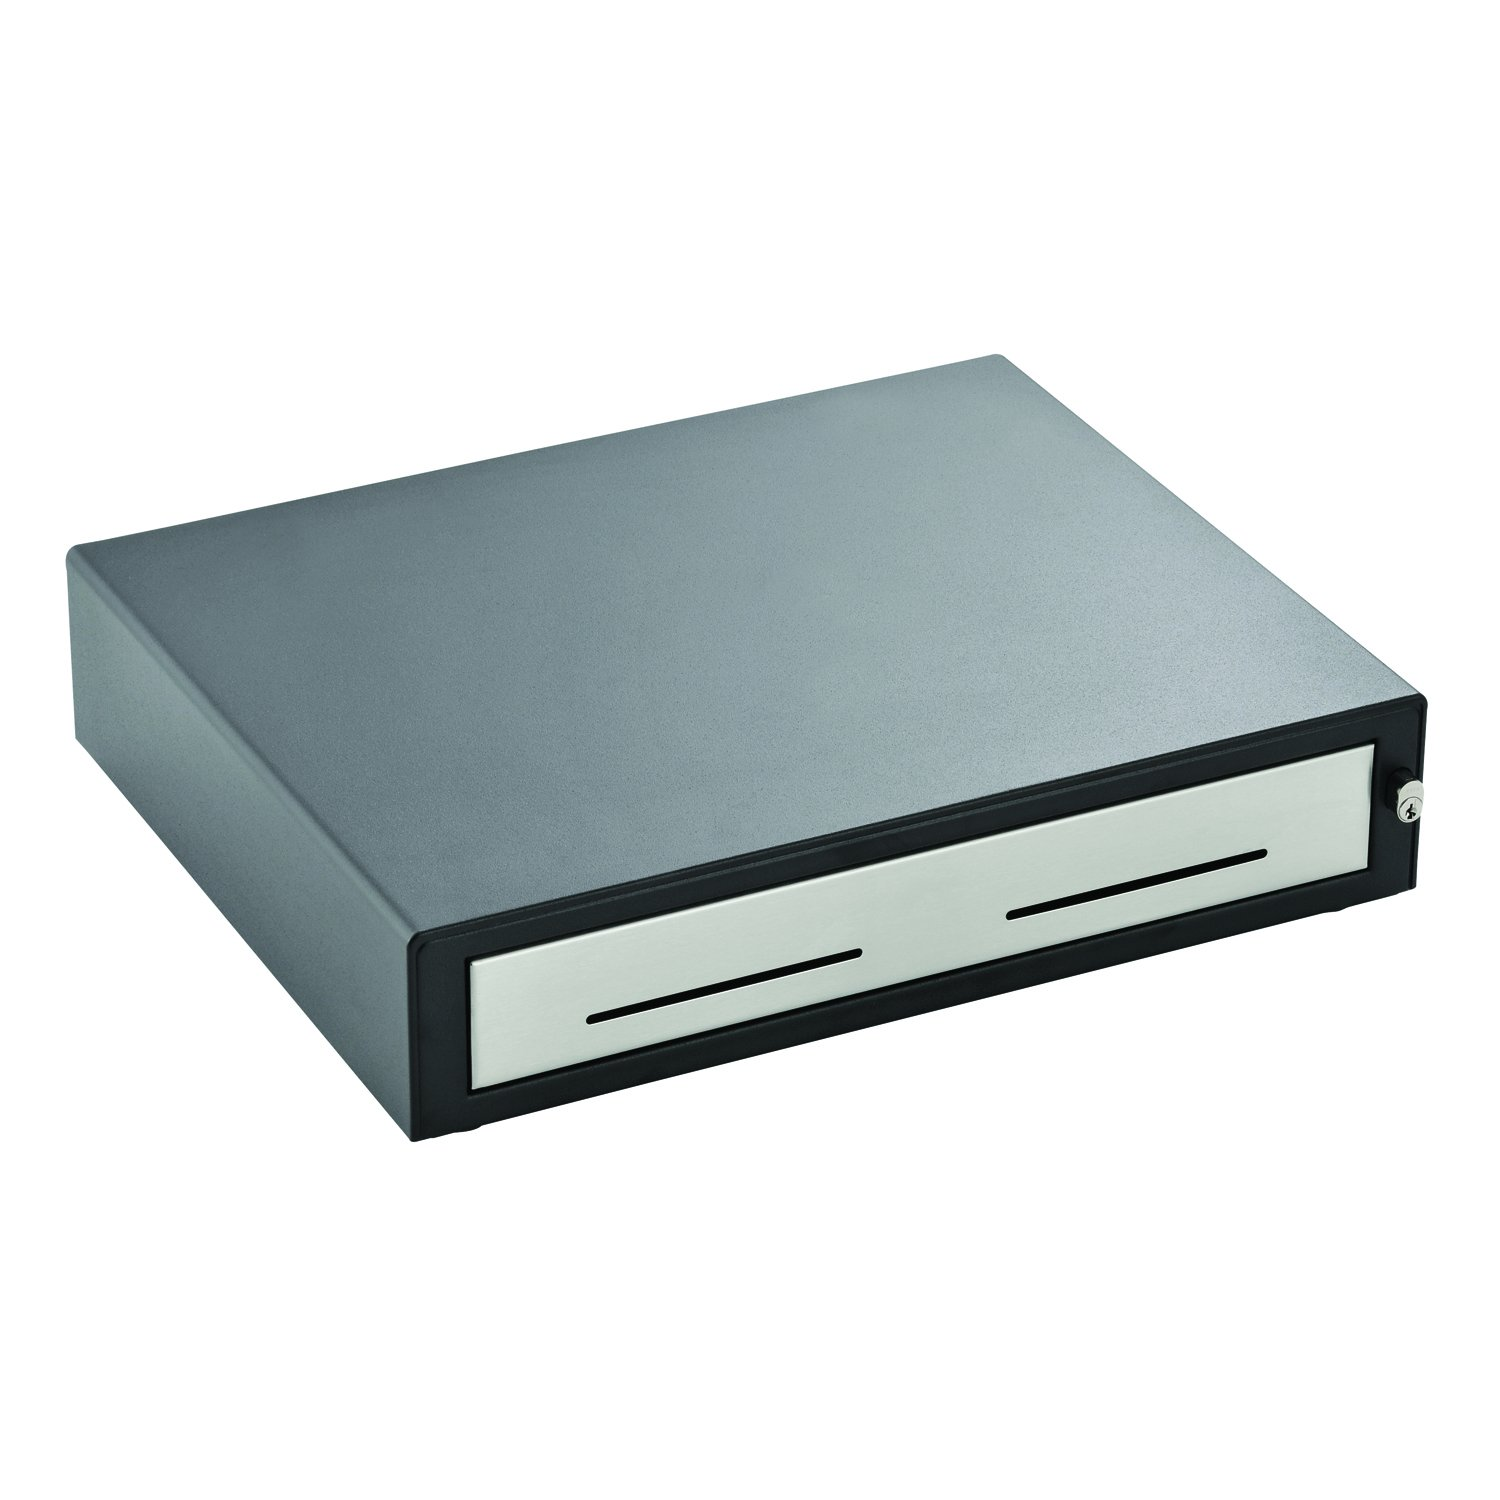 MMF Heritage 15-Inch Cash Drawer with Cable, Black/Stainless Steel (22611315131204A)